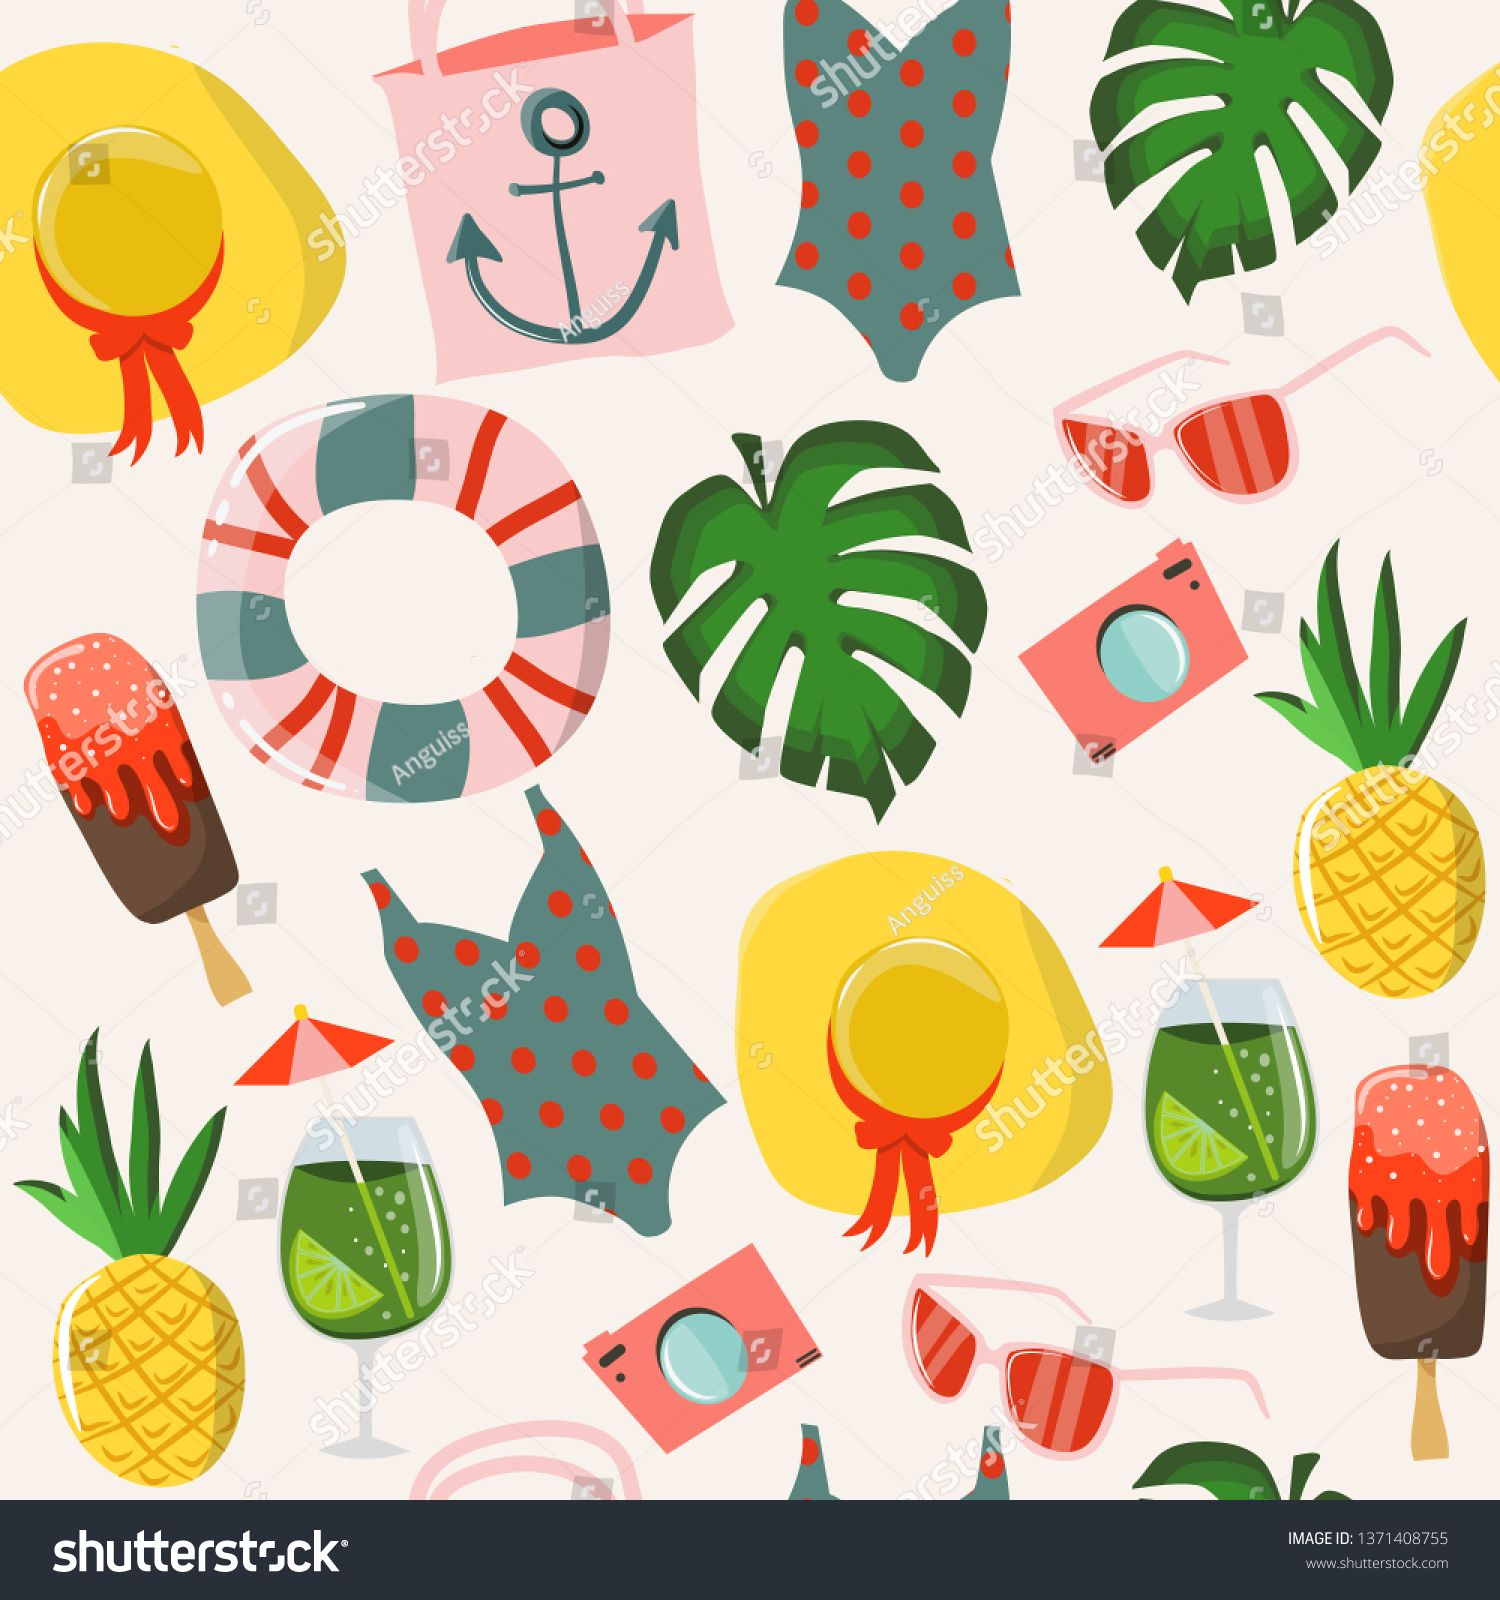 Summer seamless pattern    #illustration #vectorillustration #vectorart #vectorartist #clipart #shutterstock #adobeillustrator #vectorgraphics #summer #summerpattern #seamlesspattern